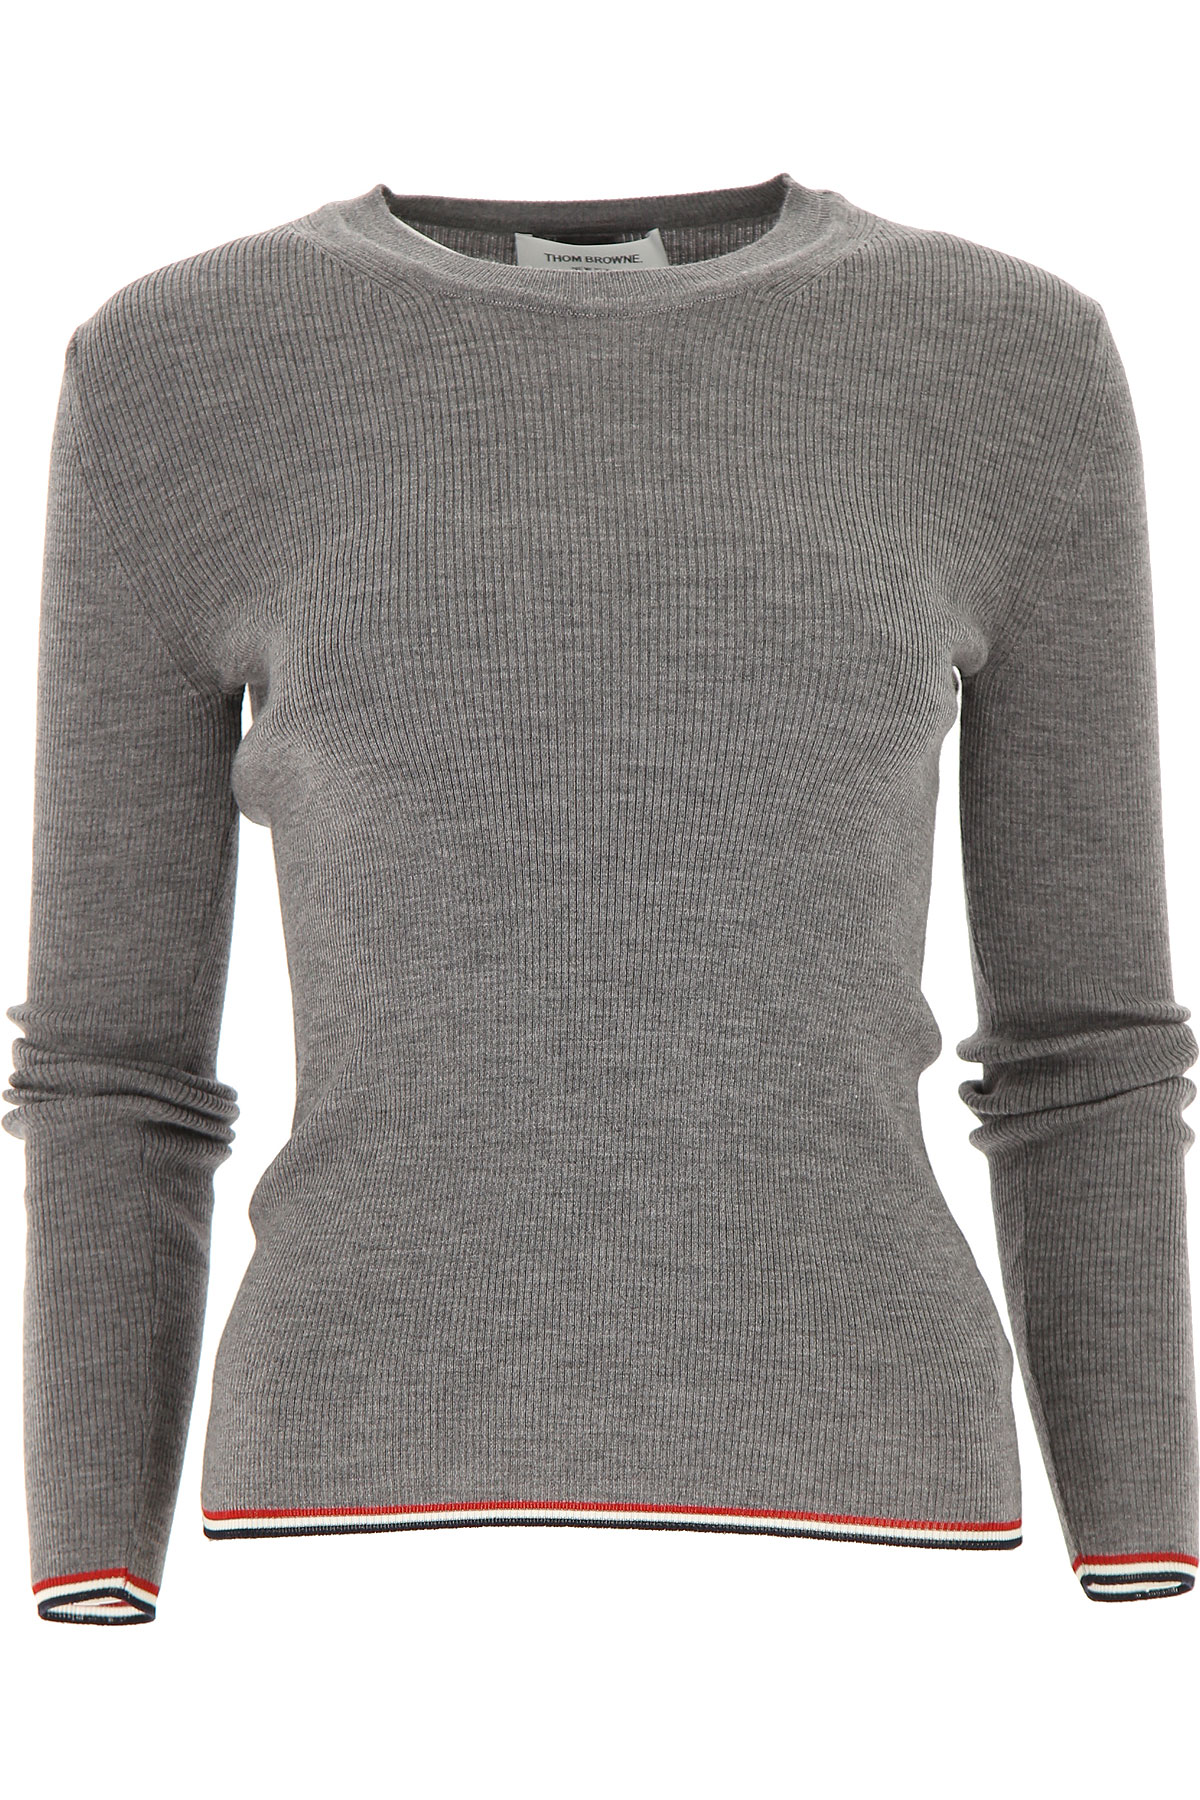 THOM BROWNE Sweater for Women Jumper On Sale, Grey, Wool, 2019, 6 8